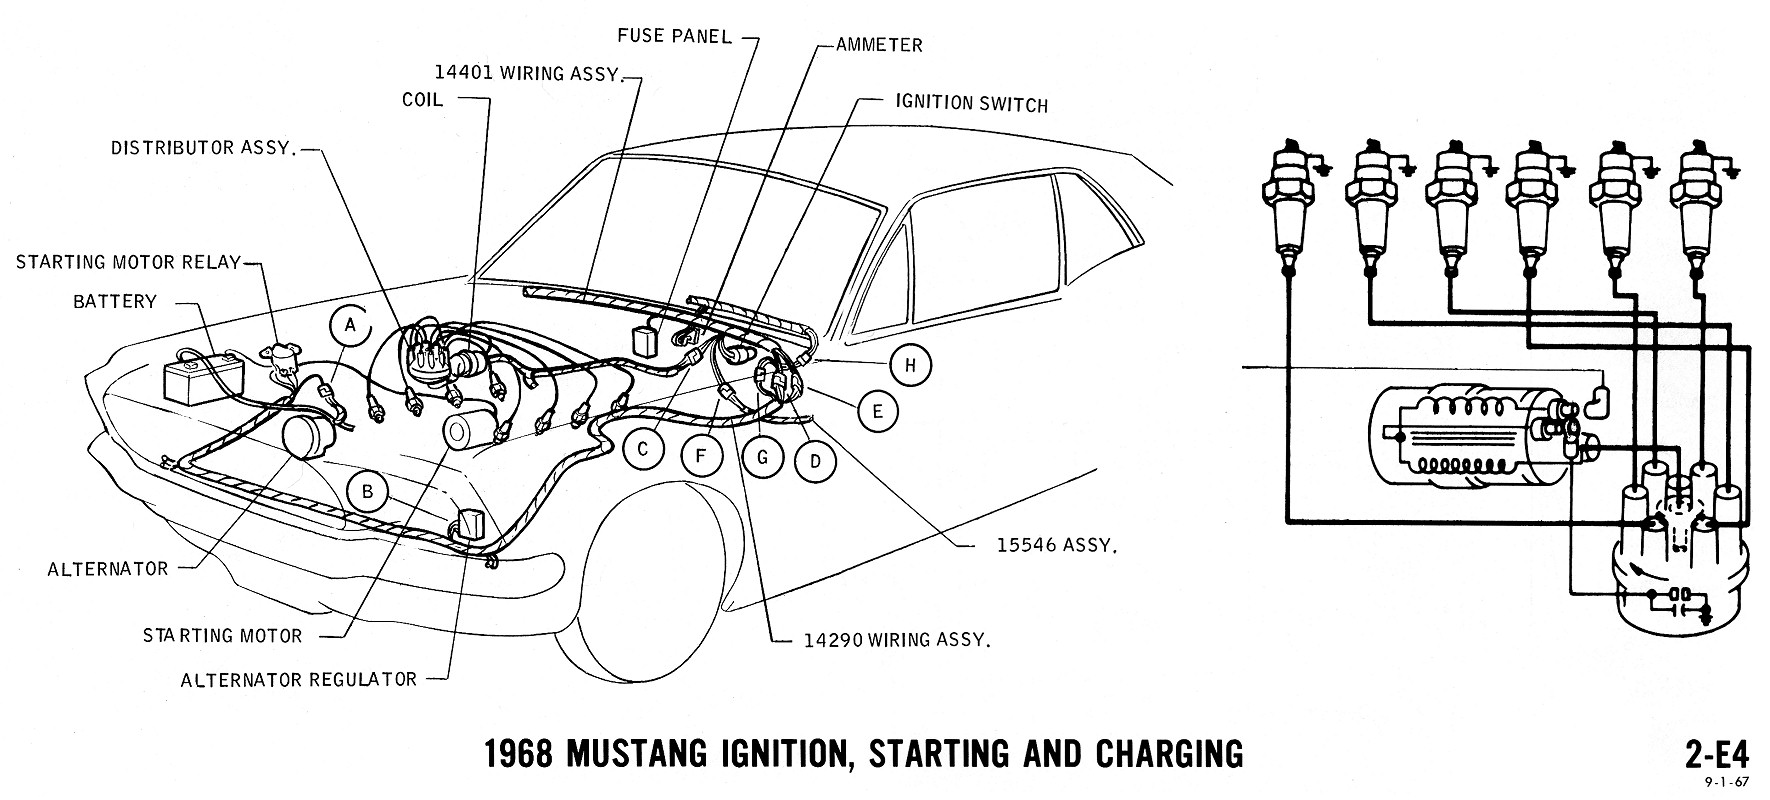 1968 mustang wiring diagram ignition starting charging 2 1968 mustang wiring diagrams and vacuum schematics average joe 1969 Ford F100 Steering Column Wiring Diagram at gsmportal.co